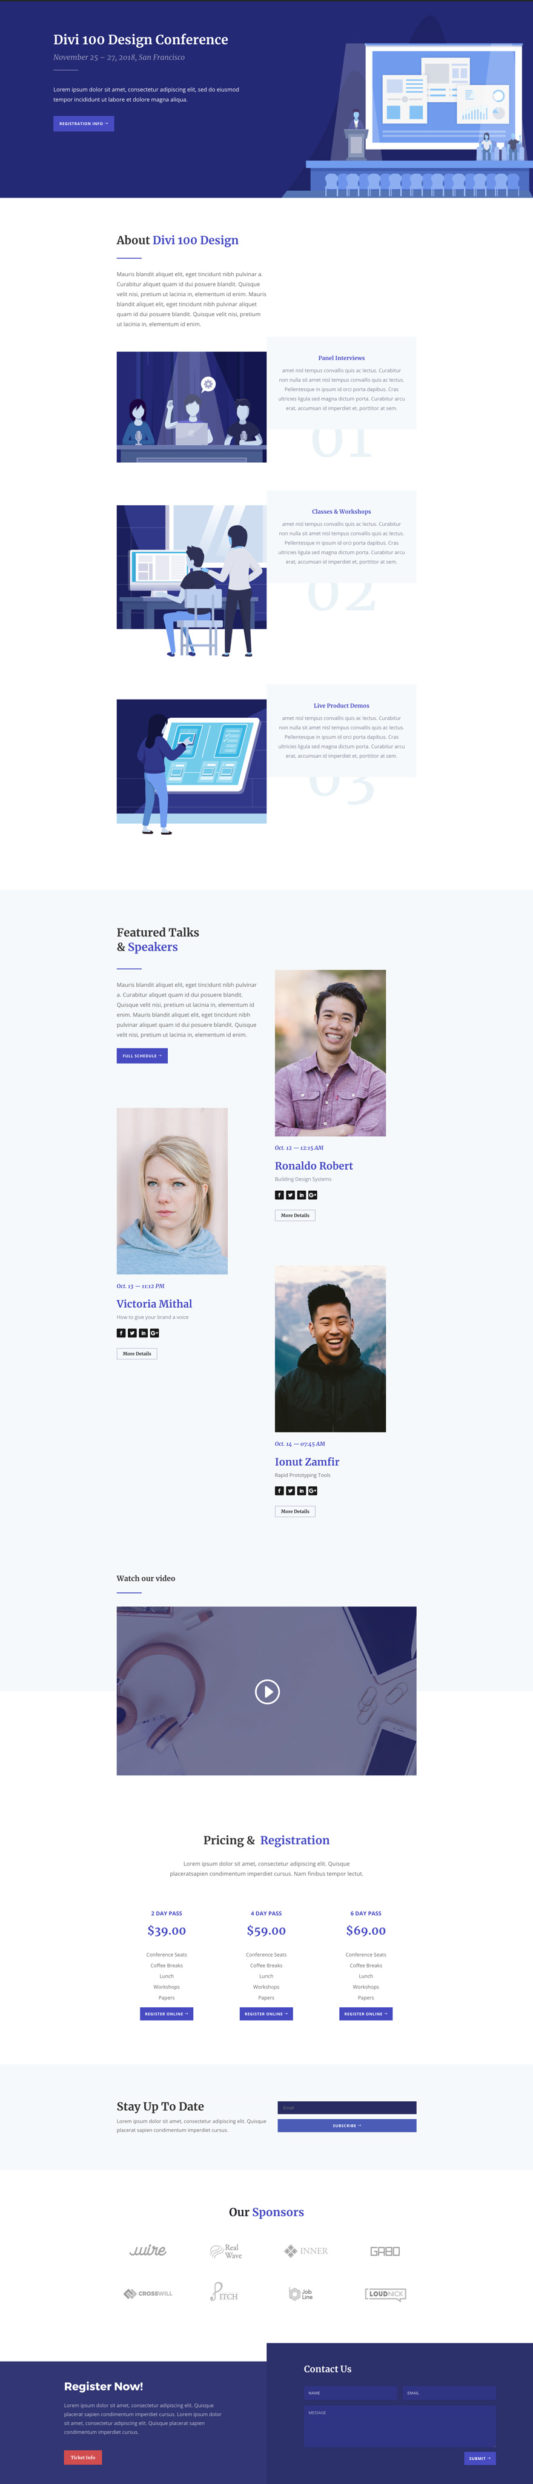 Design Conference Landing Page